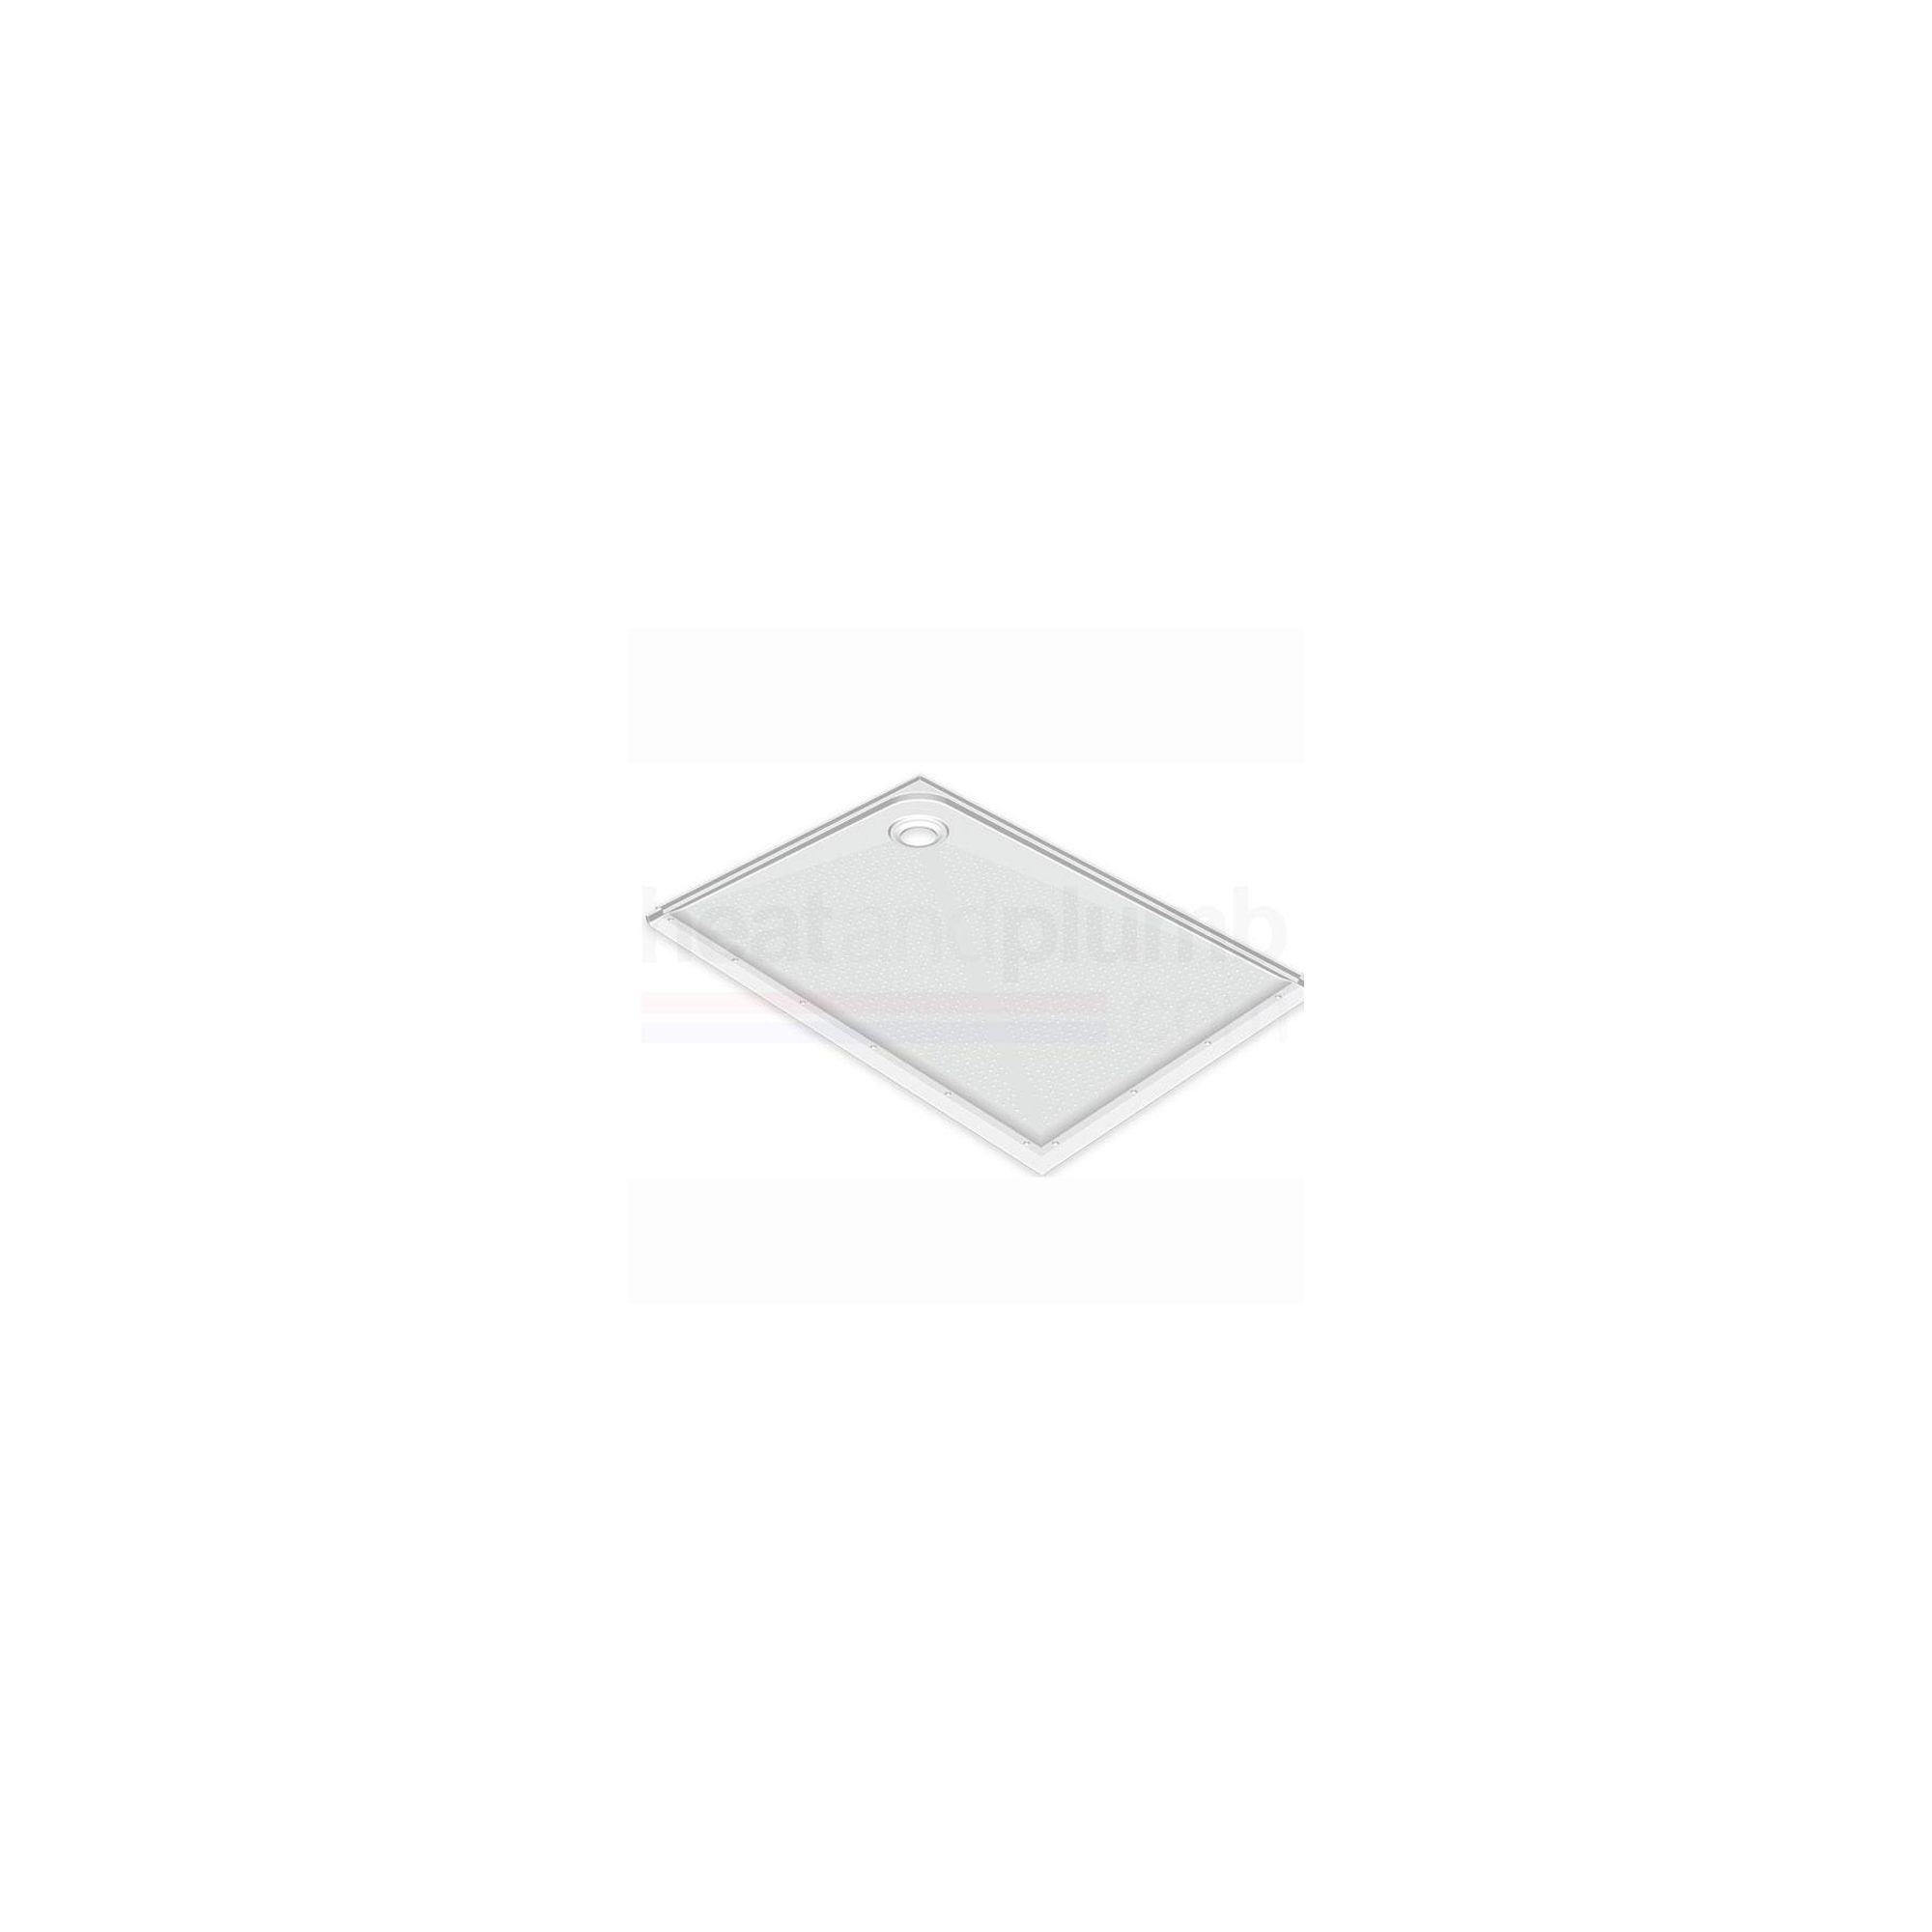 AKW Dalby Rectangular Shower Tray 1200mm x 700mm at Tesco Direct